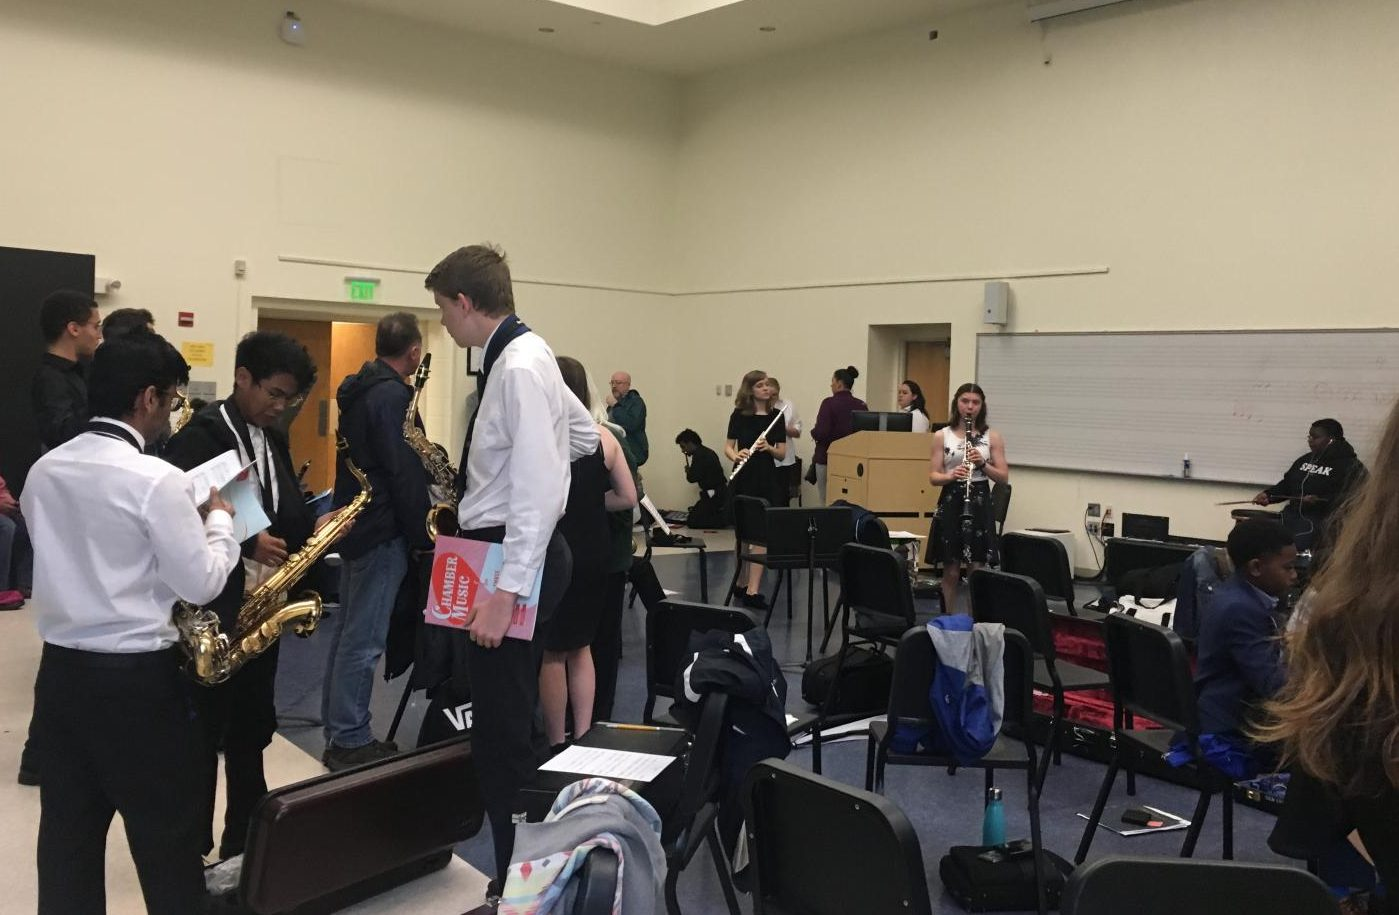 Students rehearse their pieces in the Towson warm up room before their performances.